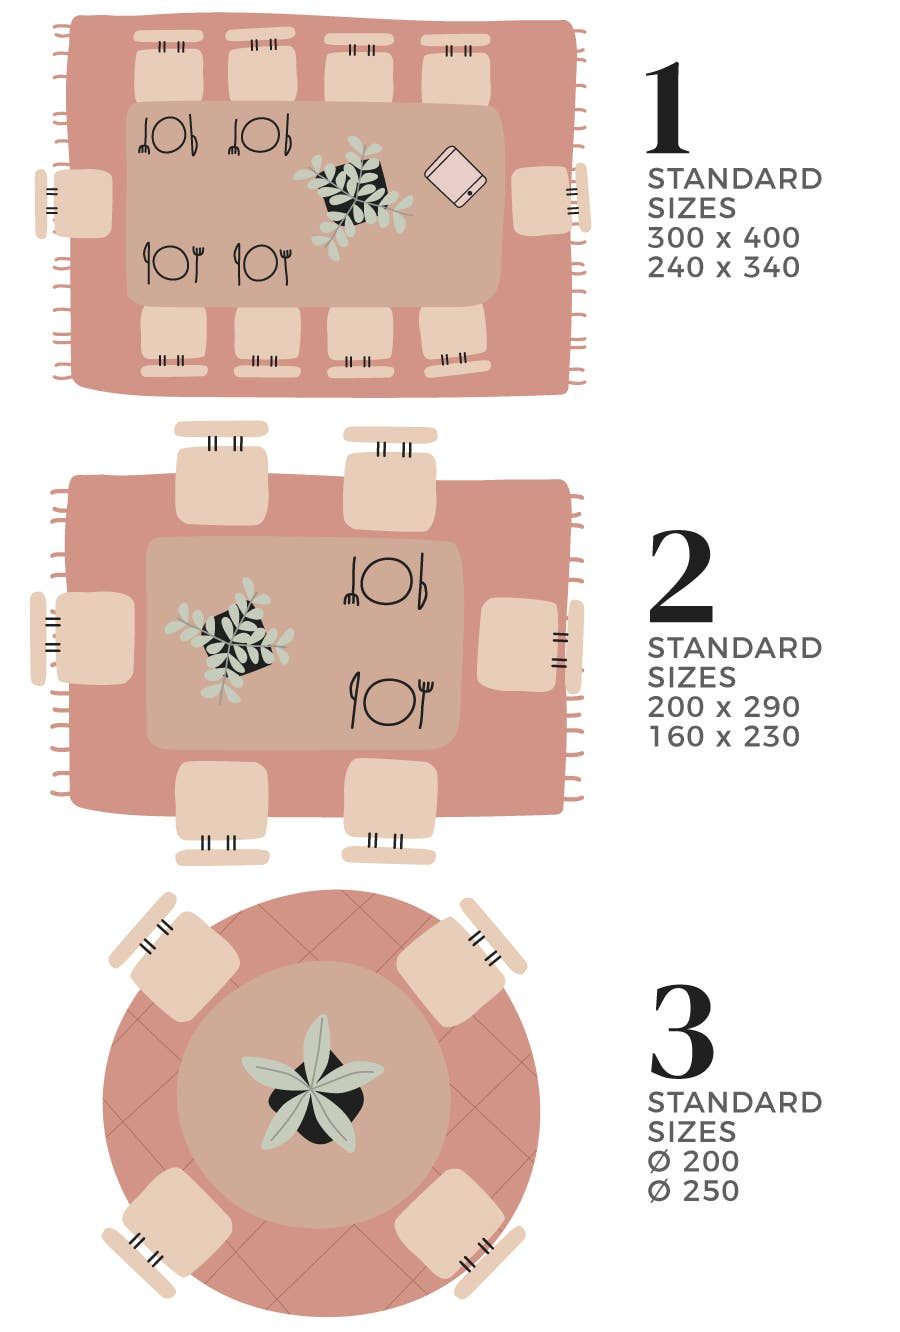 Rug Size Guide Putting The In, Dining Room Rug Size